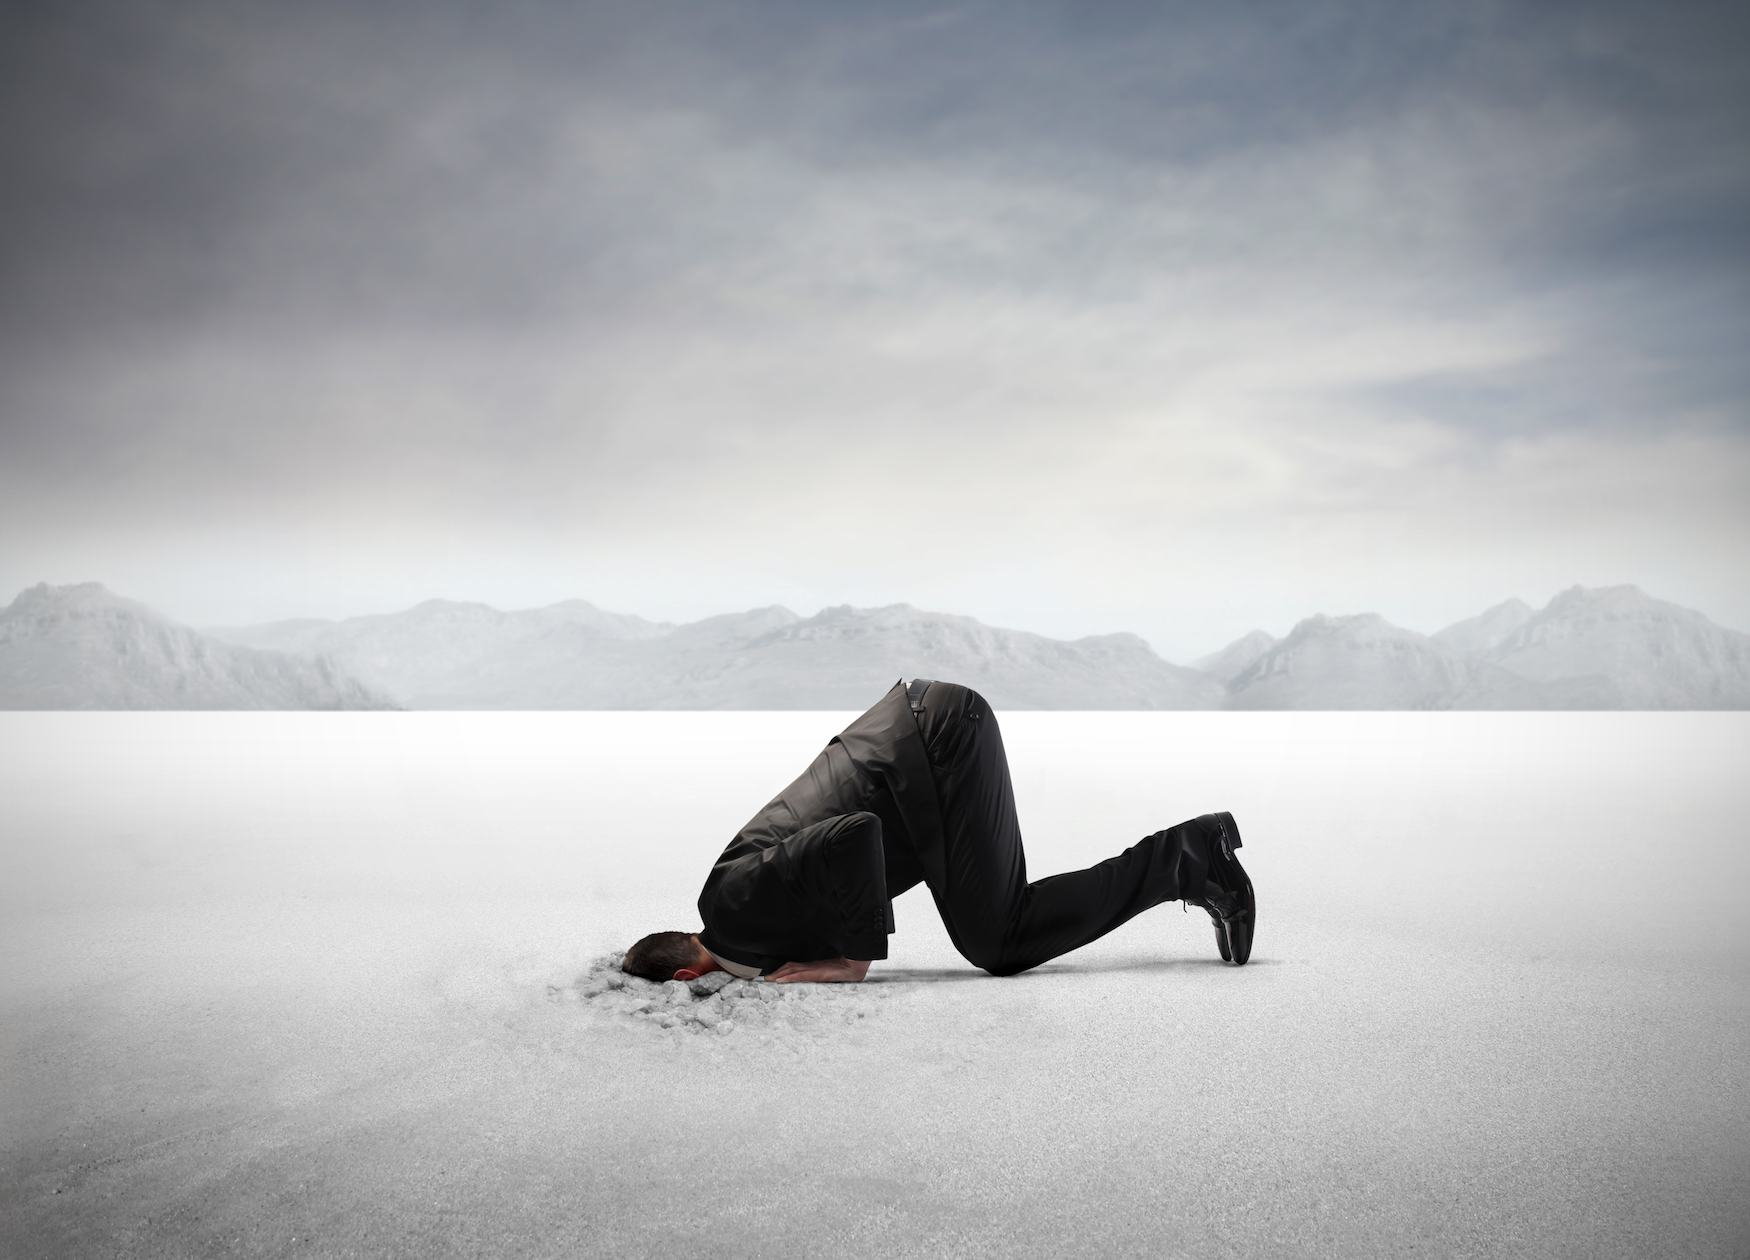 Employees in the vuca world - overchoice and performance stress